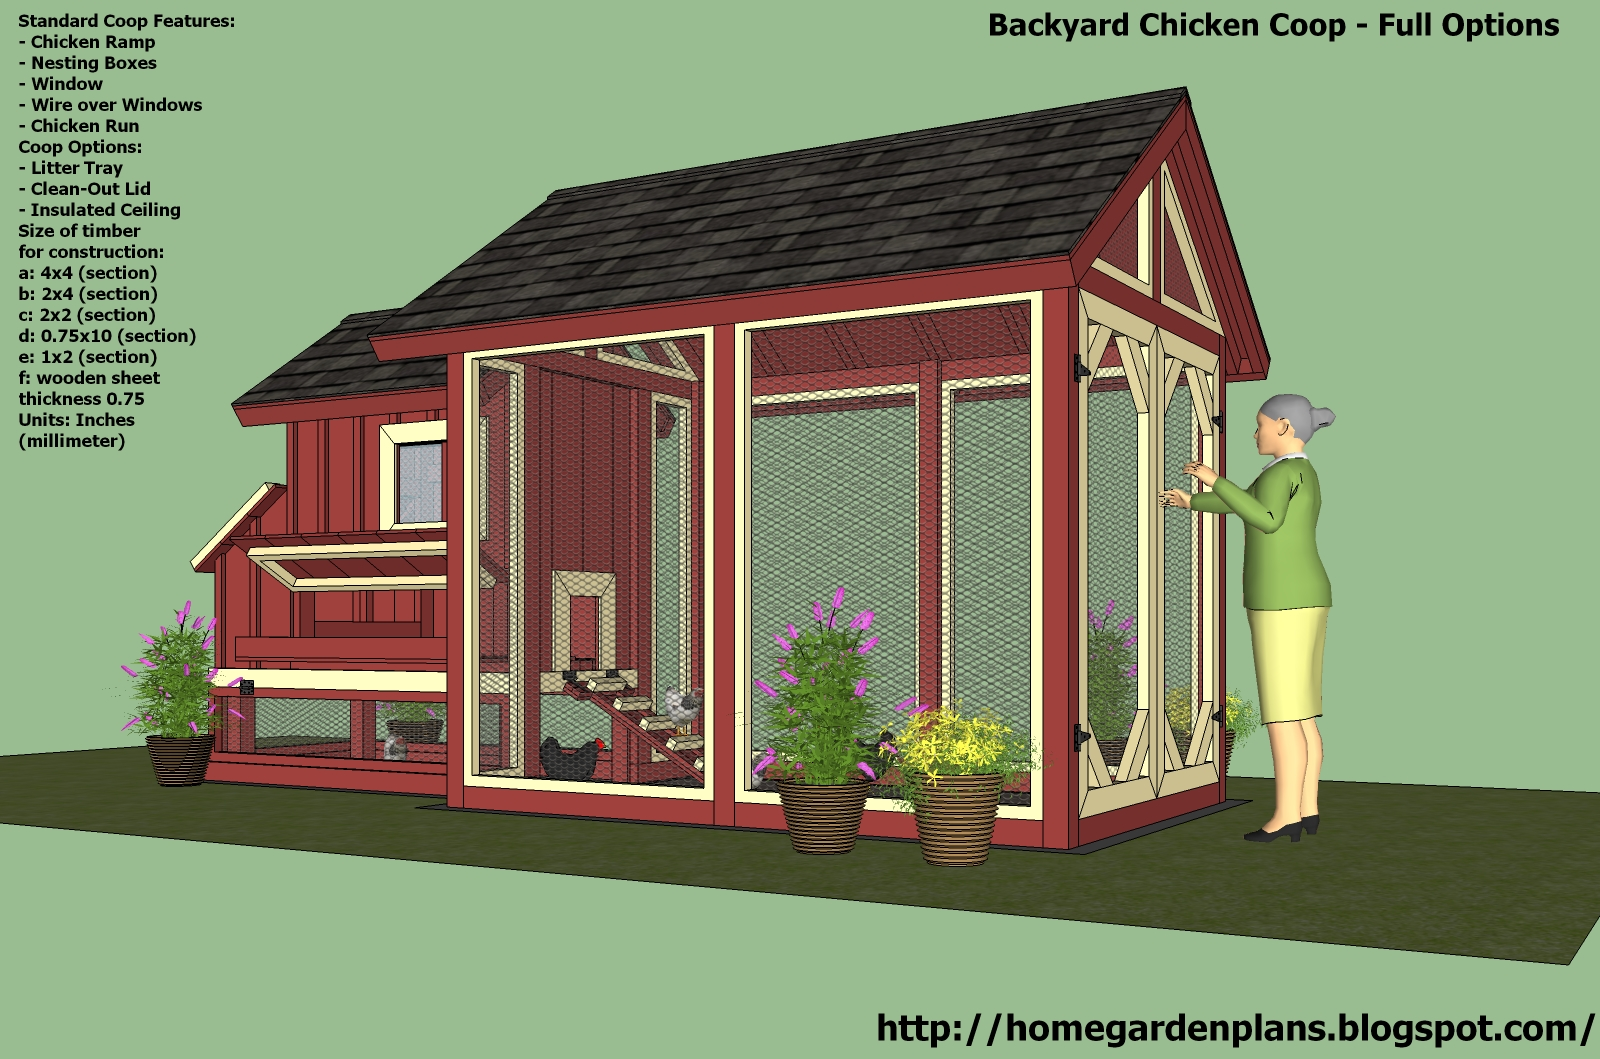 home garden plans: News: S101 - Small Chicken Coop Free ...